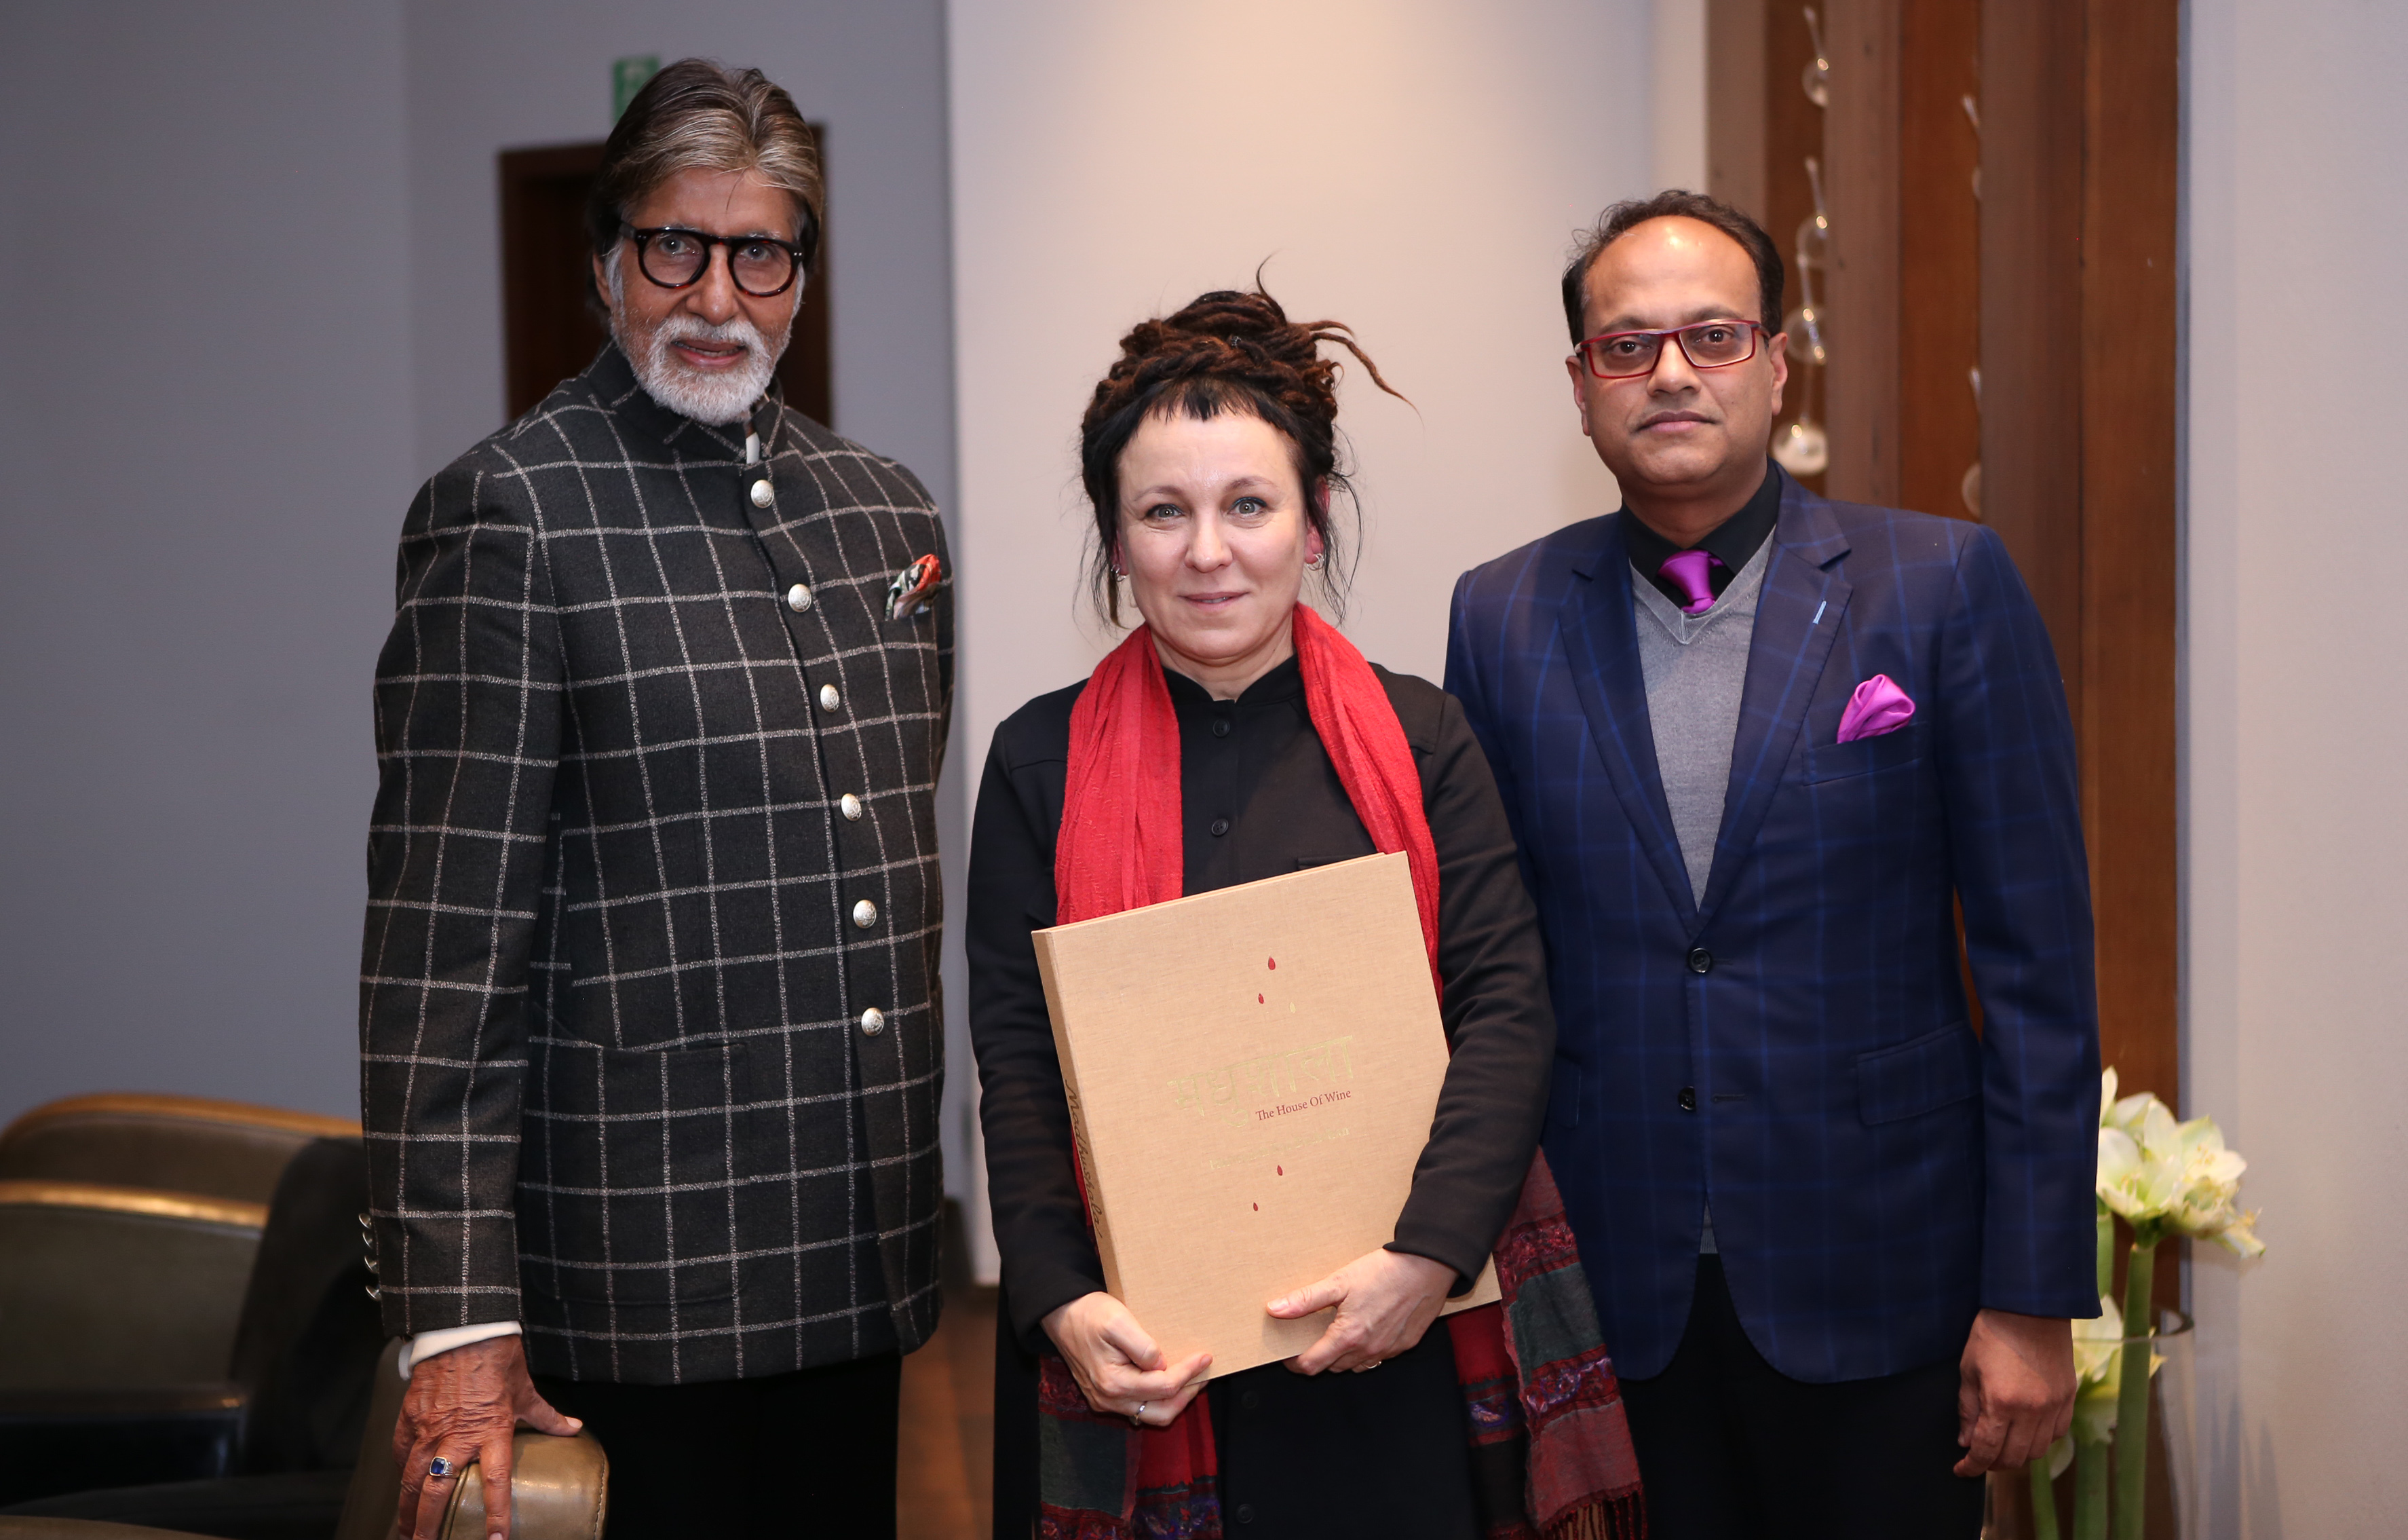 Amitabh Bachchan with Nobel Prize winner Olga Tokarczuk and Kartikey Johri, Honorary Consul of the Republic of India in Wrocław.